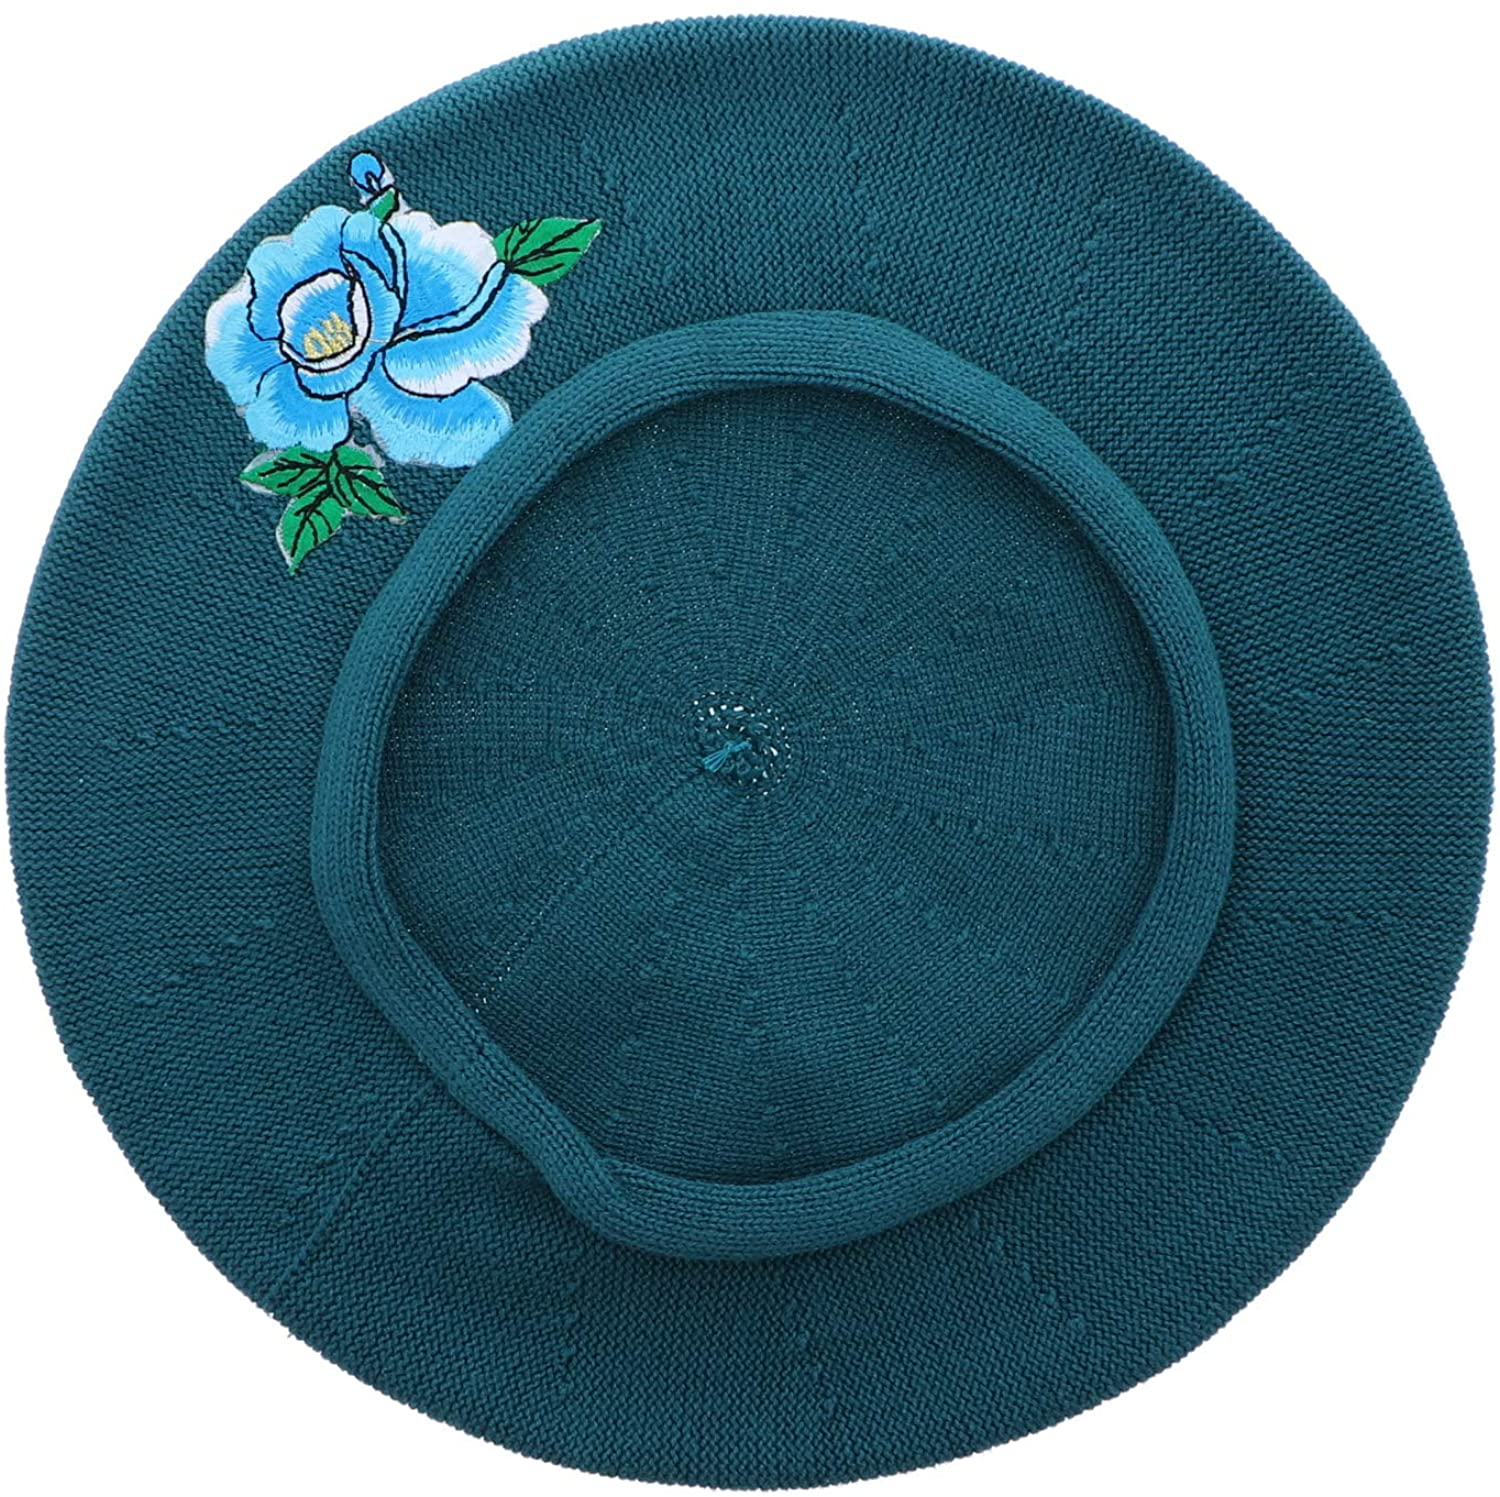 Blue Flower with Leaves Applique on Cotton Beret Womens Head Cover